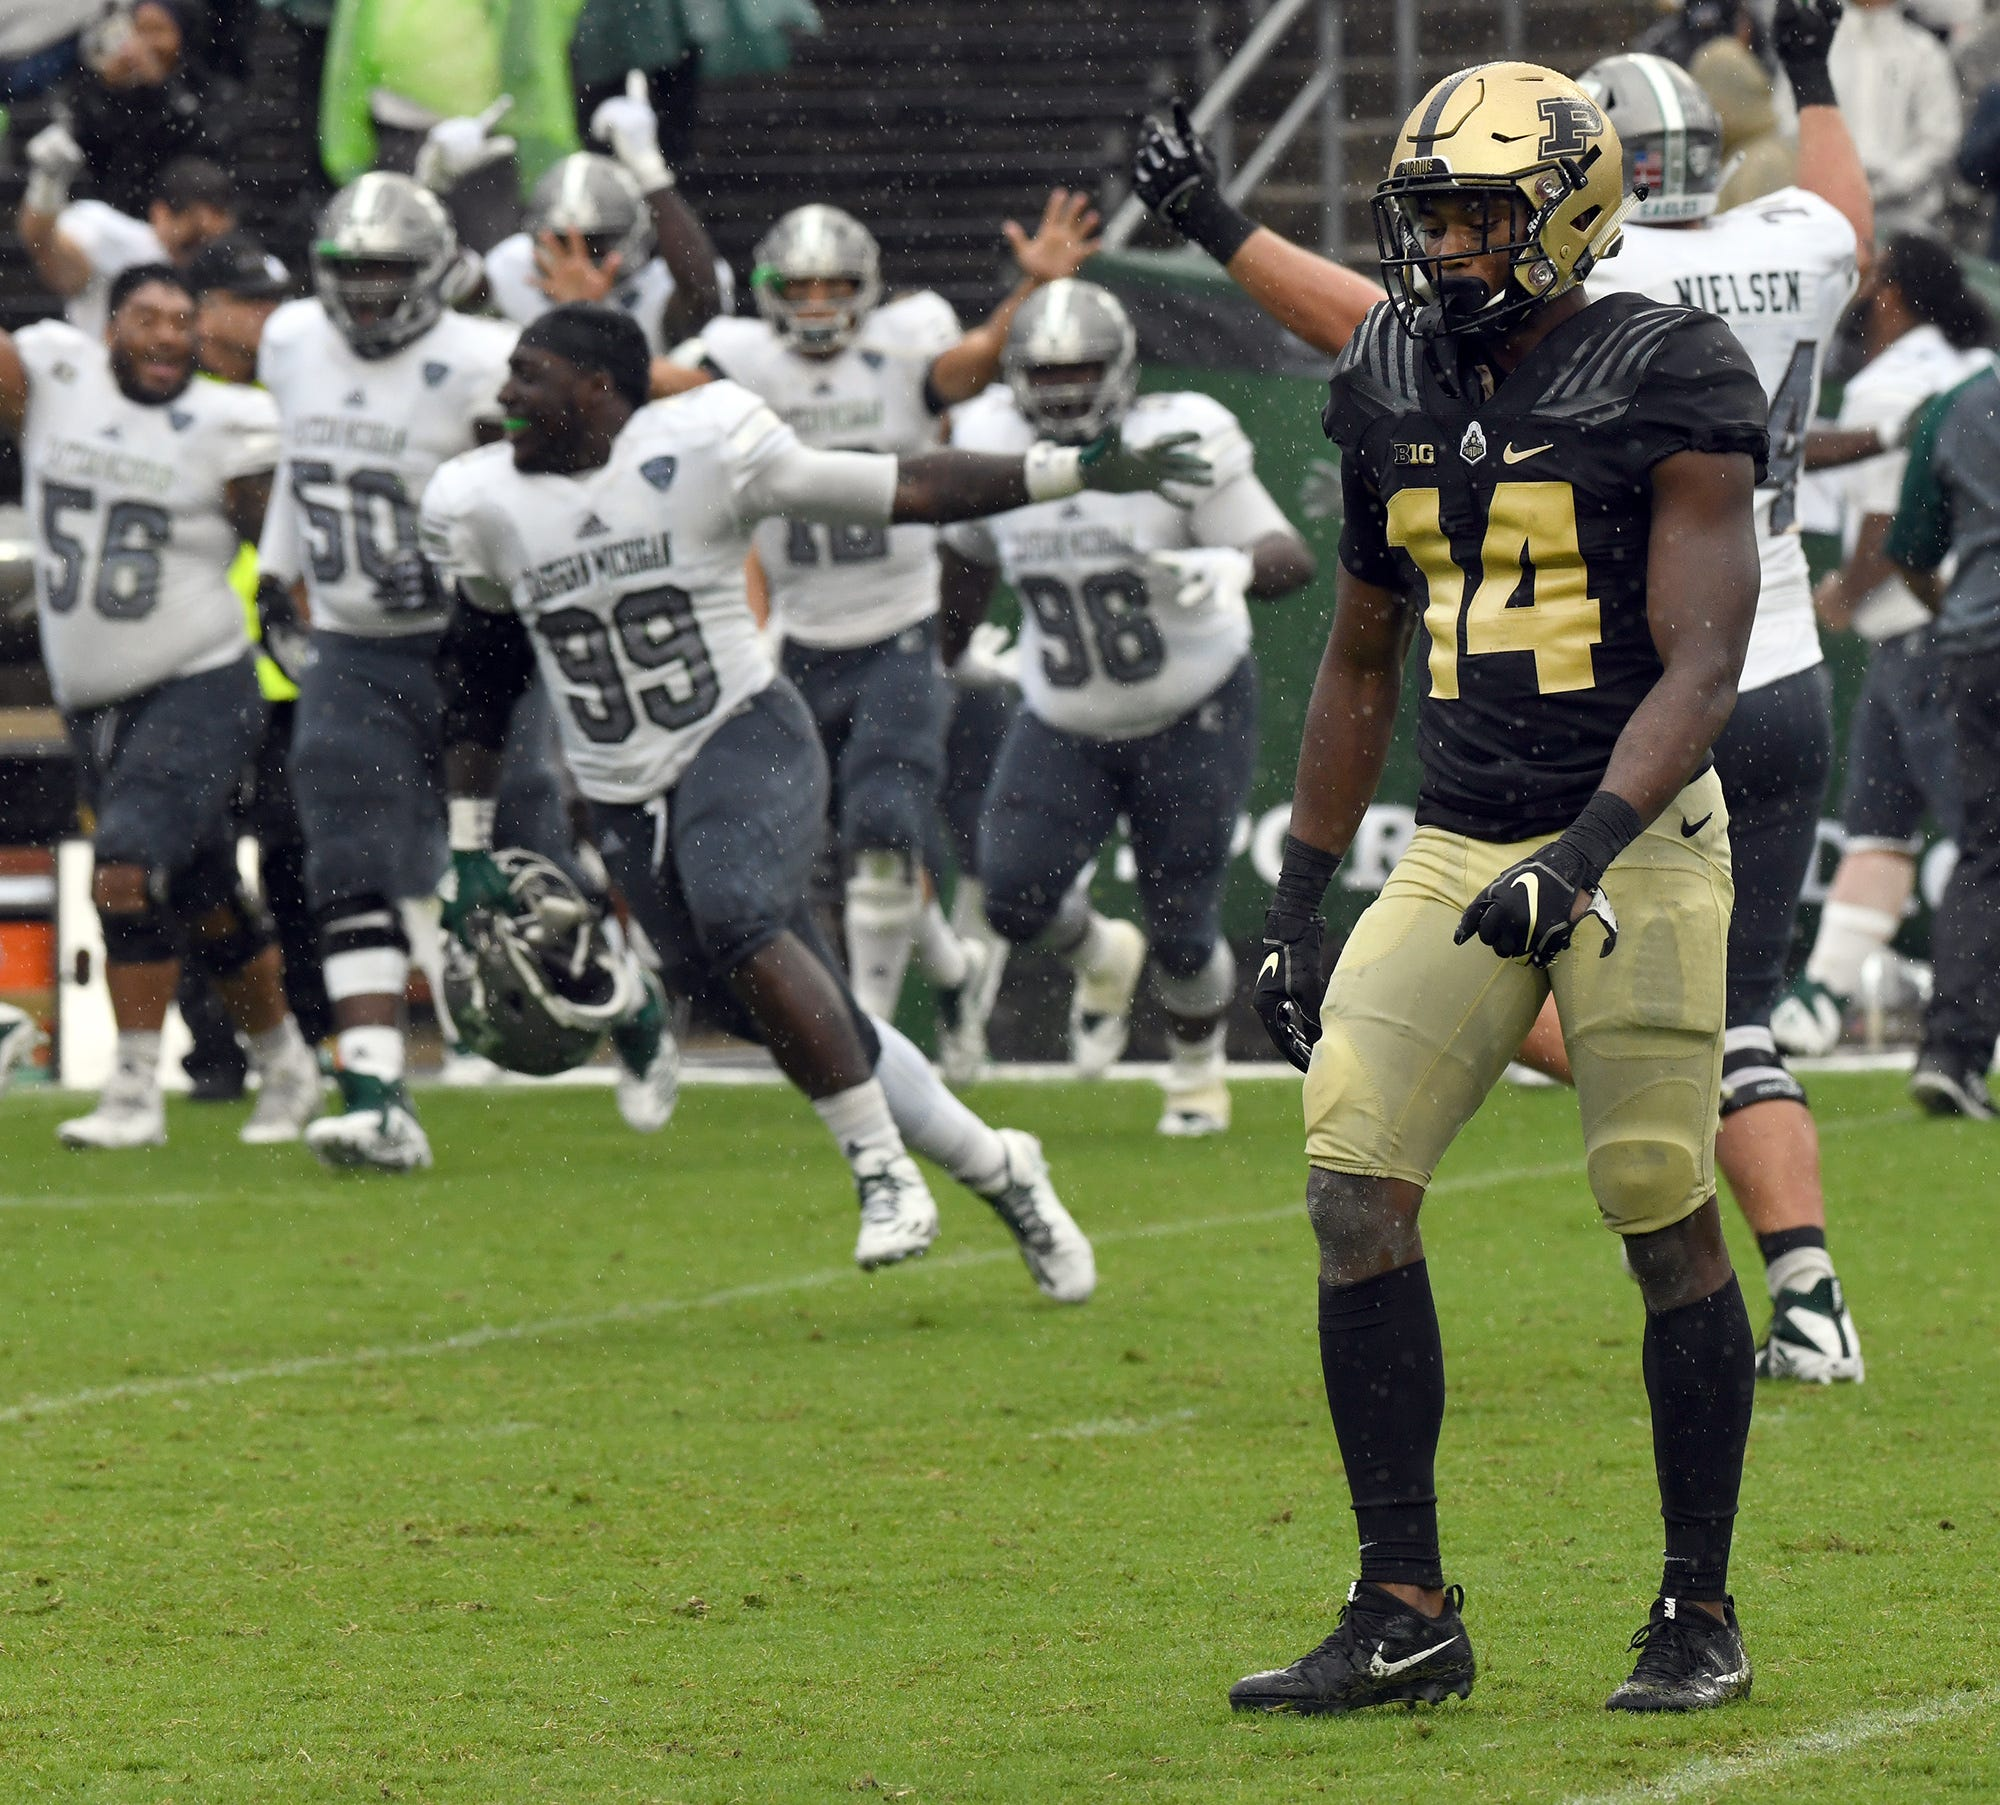 Purdue's Antonio Blackmon reacts to the game winning field goal by Eastern Michigan as time expired in West Lafayette on September 8, 2018. Purdue lost 20-19.